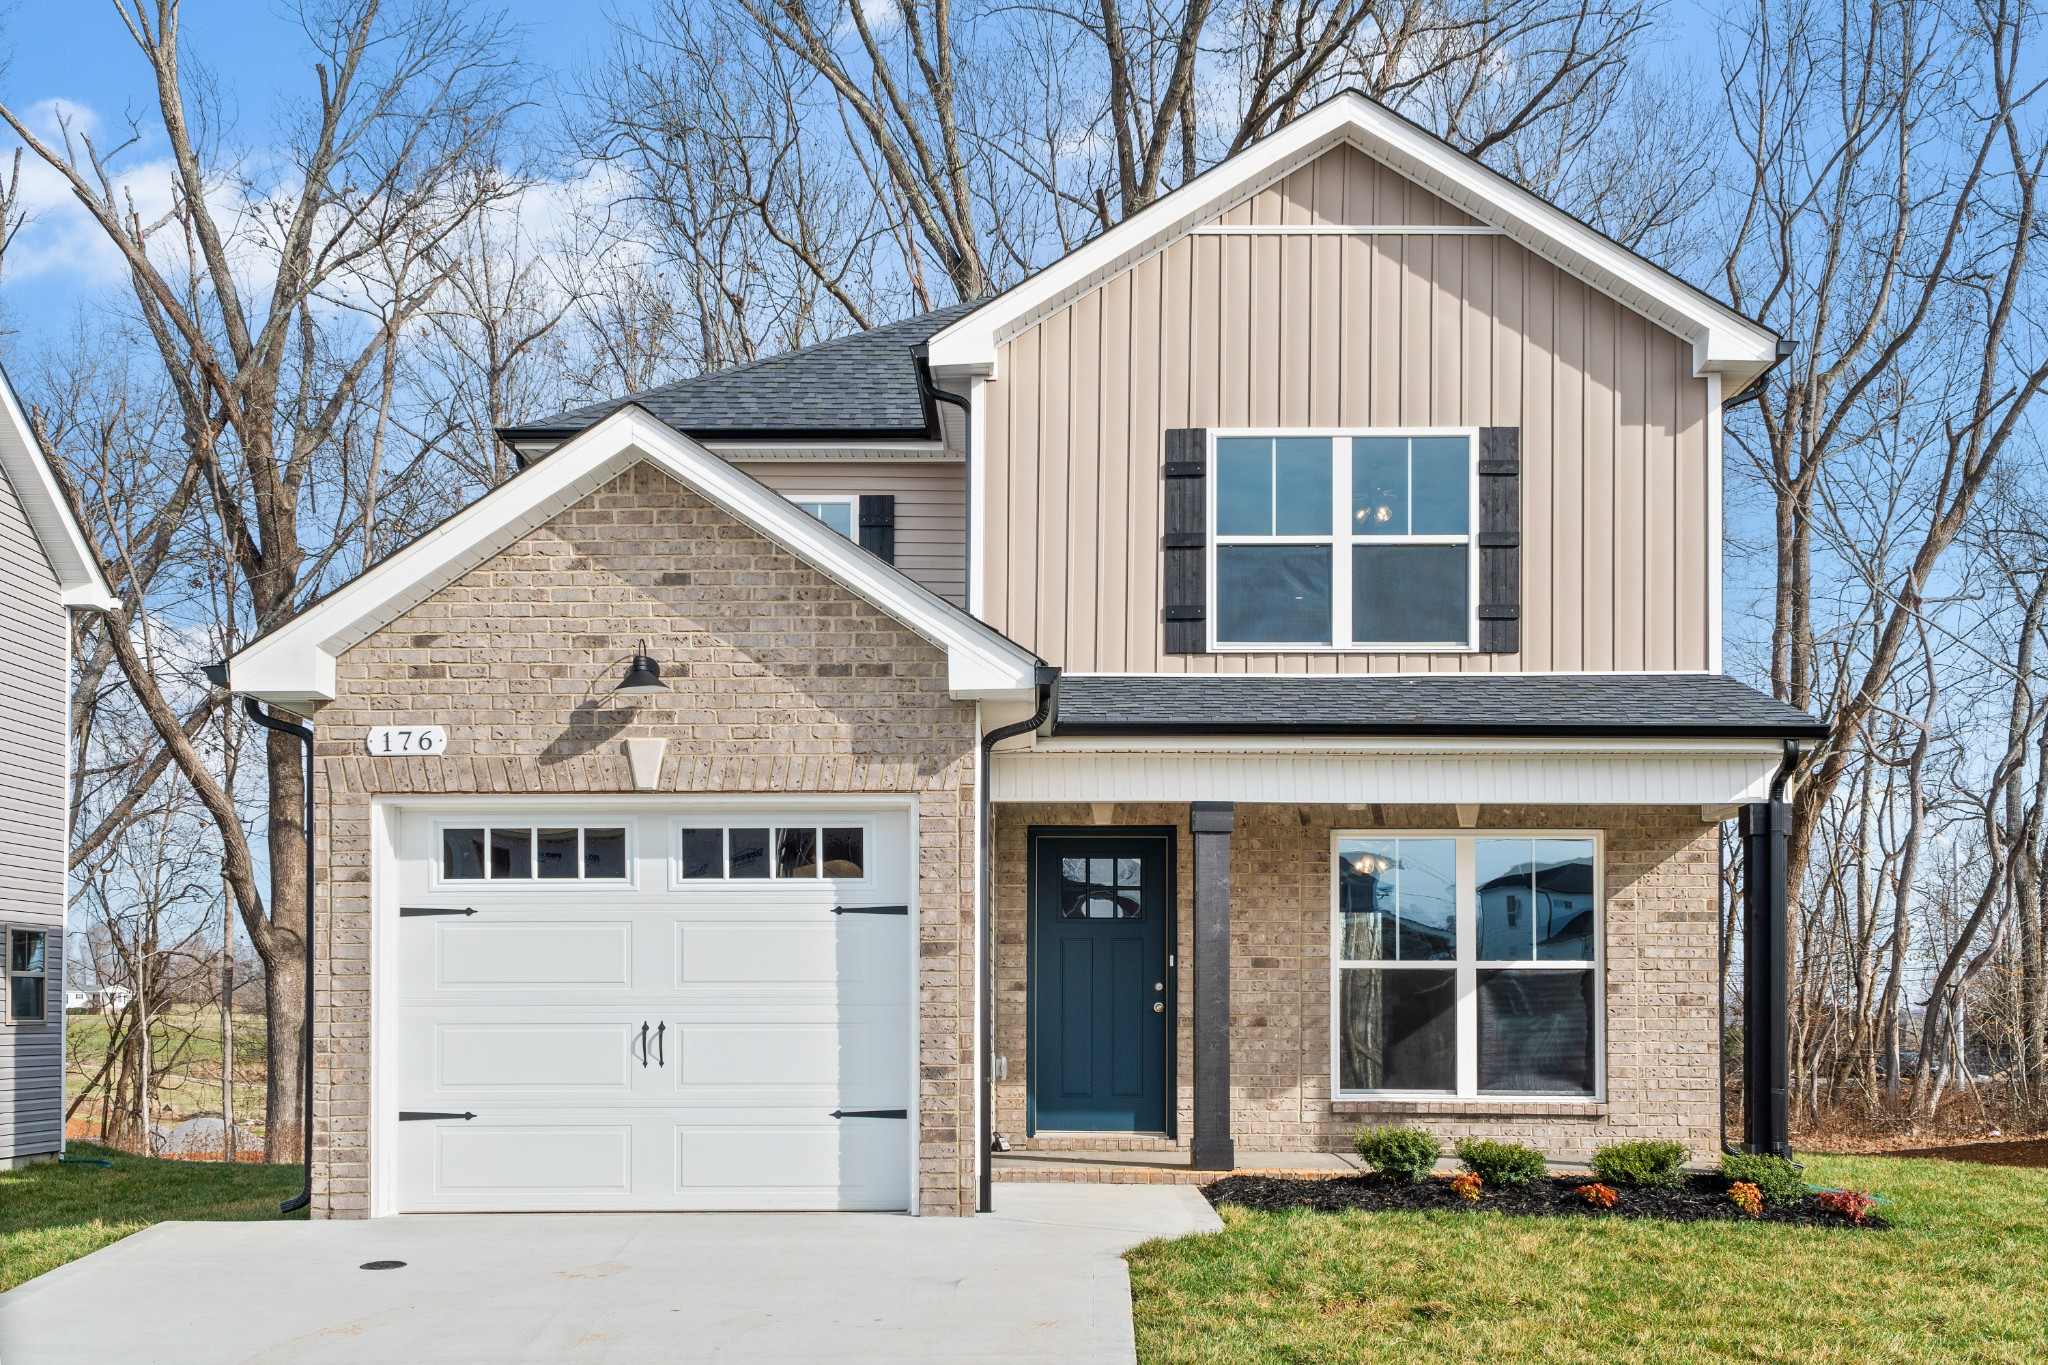 Welcome Home to Old Mill Station - NEW Exclusive Boutique Community Conveniently Located Close to Fort Campbell - PRESOLD HOMES AVAILABLE Starting at $170,000 - Pick Your Selections - White & Grey Cabinetry/Granite Counters/Stainless Steel Appliances ALL STANDARD! These Homes will Sell FAST!